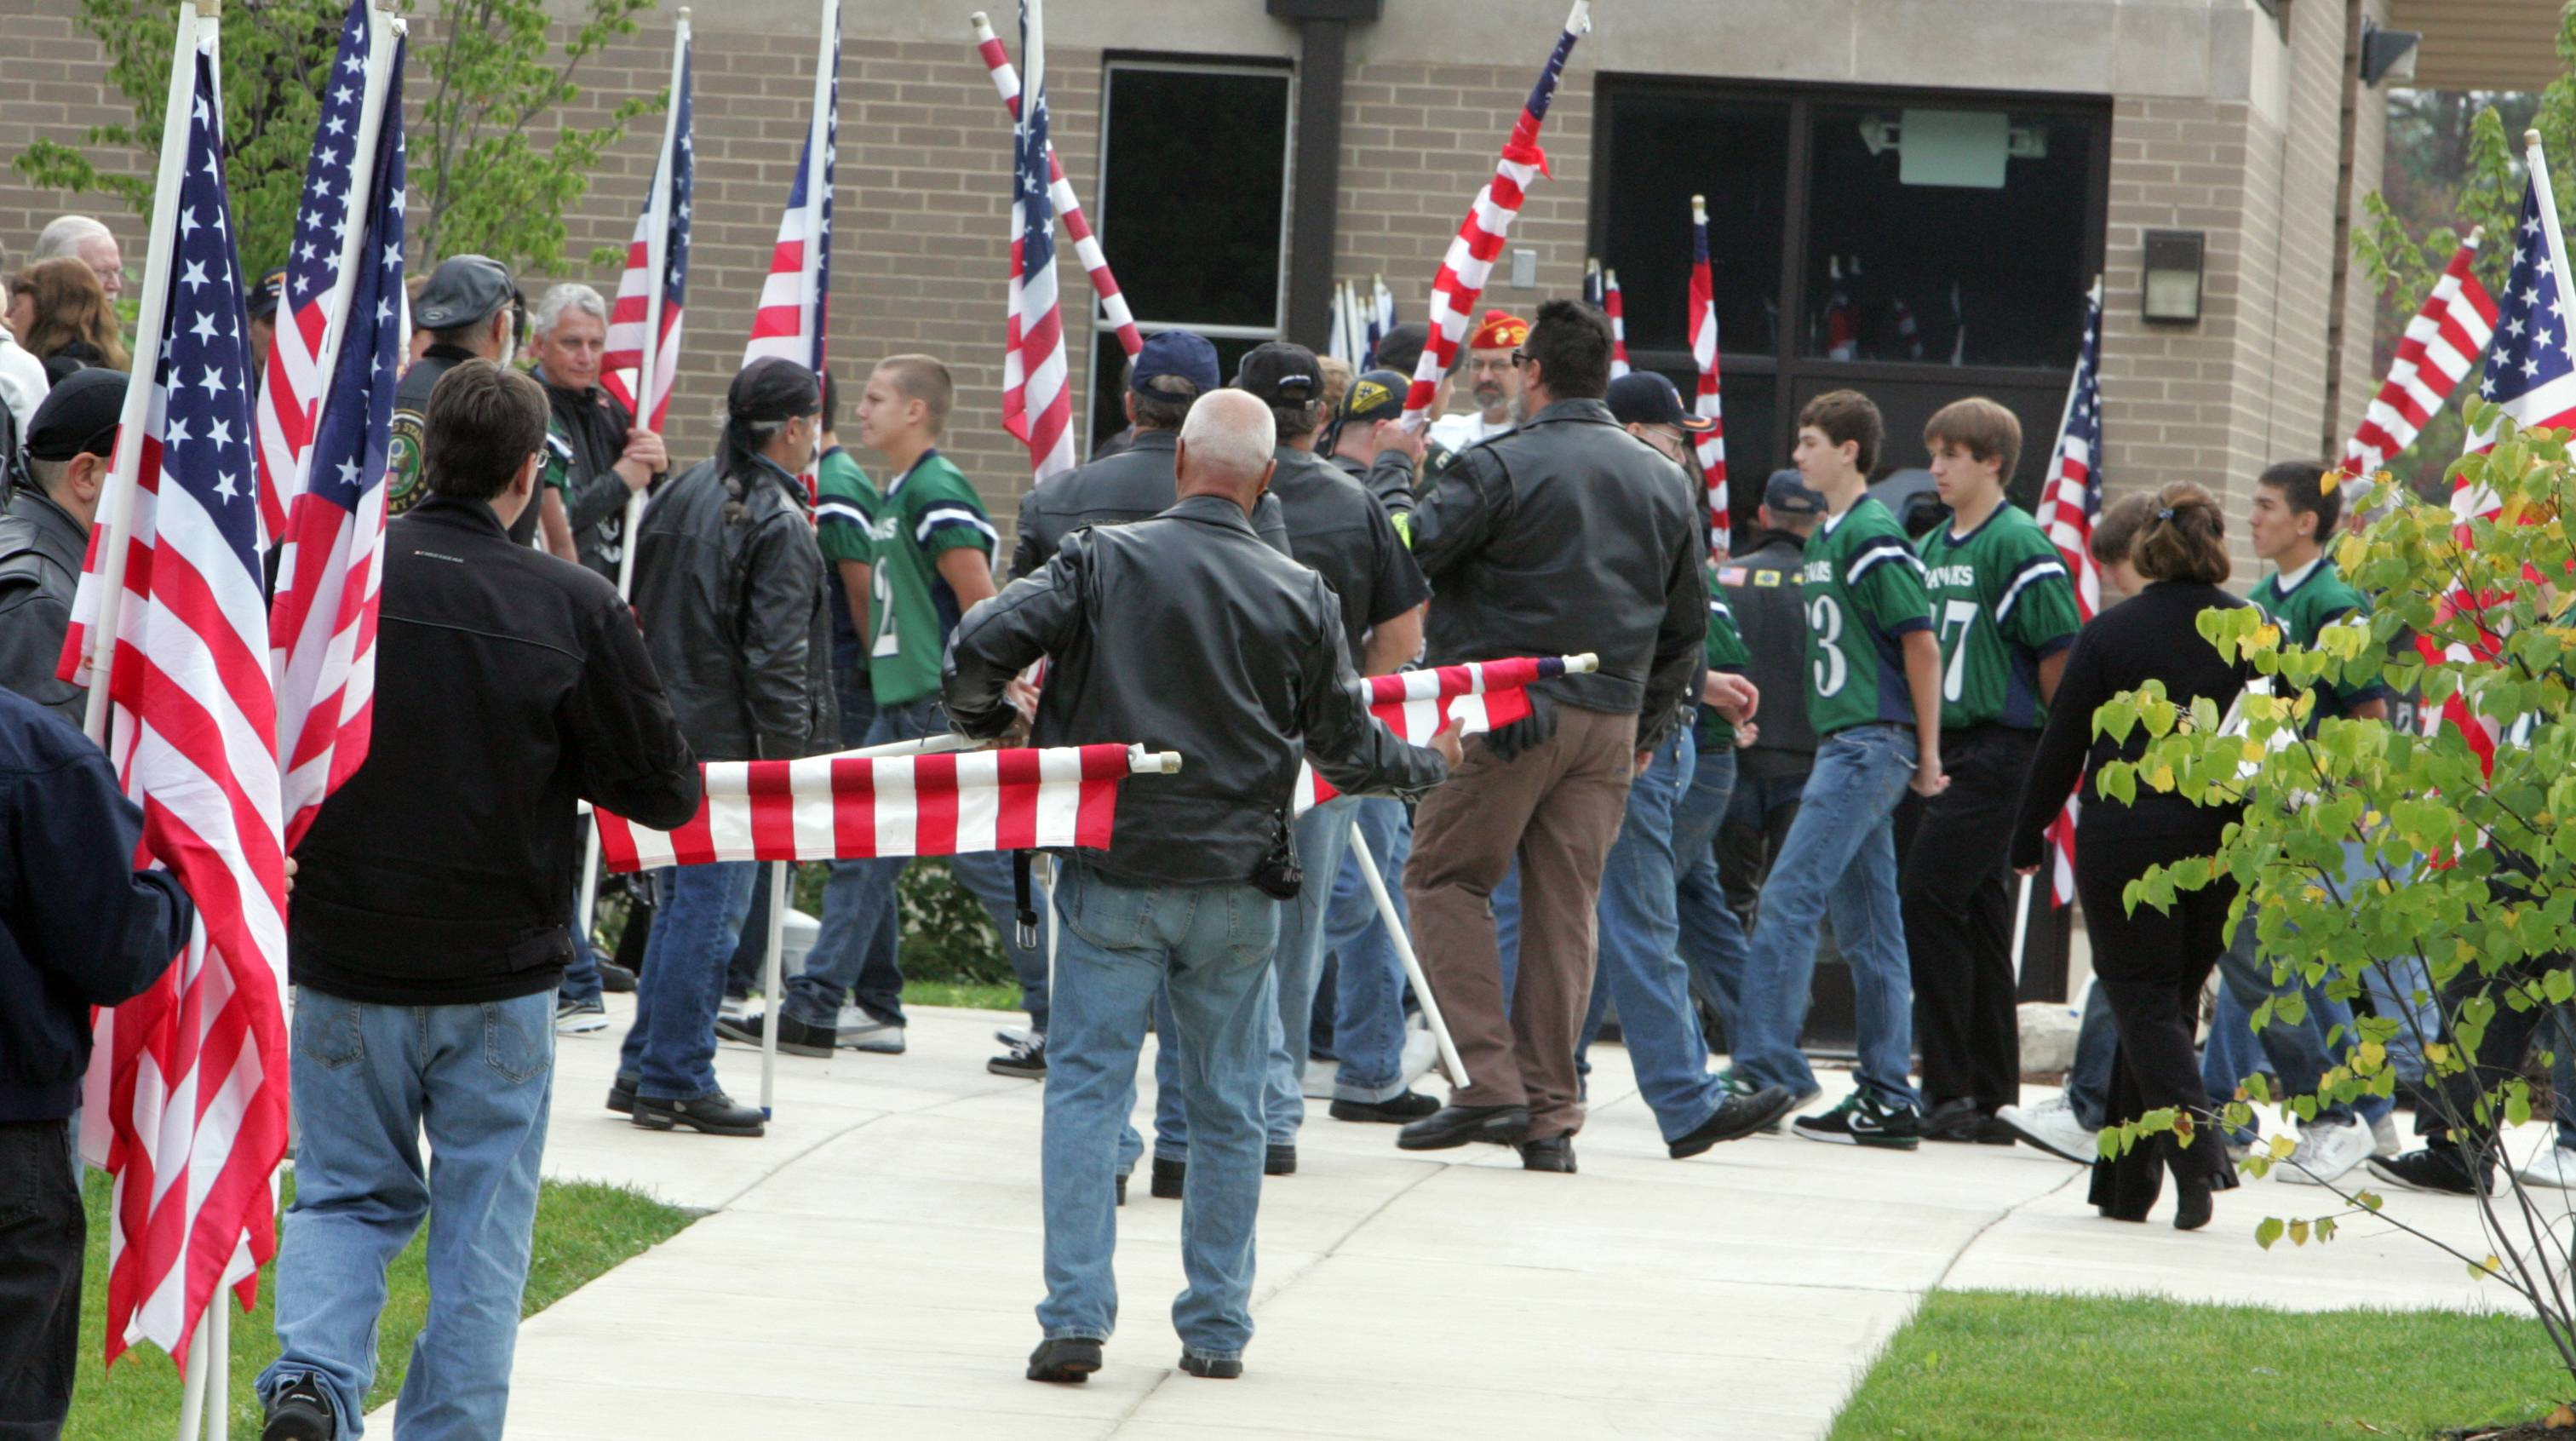 Bartlett High School football players enter St. Hubert Catholic Church as Patriot Guard Riders roll up their American flags after they were lined up at the entrance to the church for the mass of Matthew Martinek, a Bartlett High School graduate, on Saturday, Sept. 26. U.S. Army Pfc. Martinek died of injuries while serving in Afghanistan.